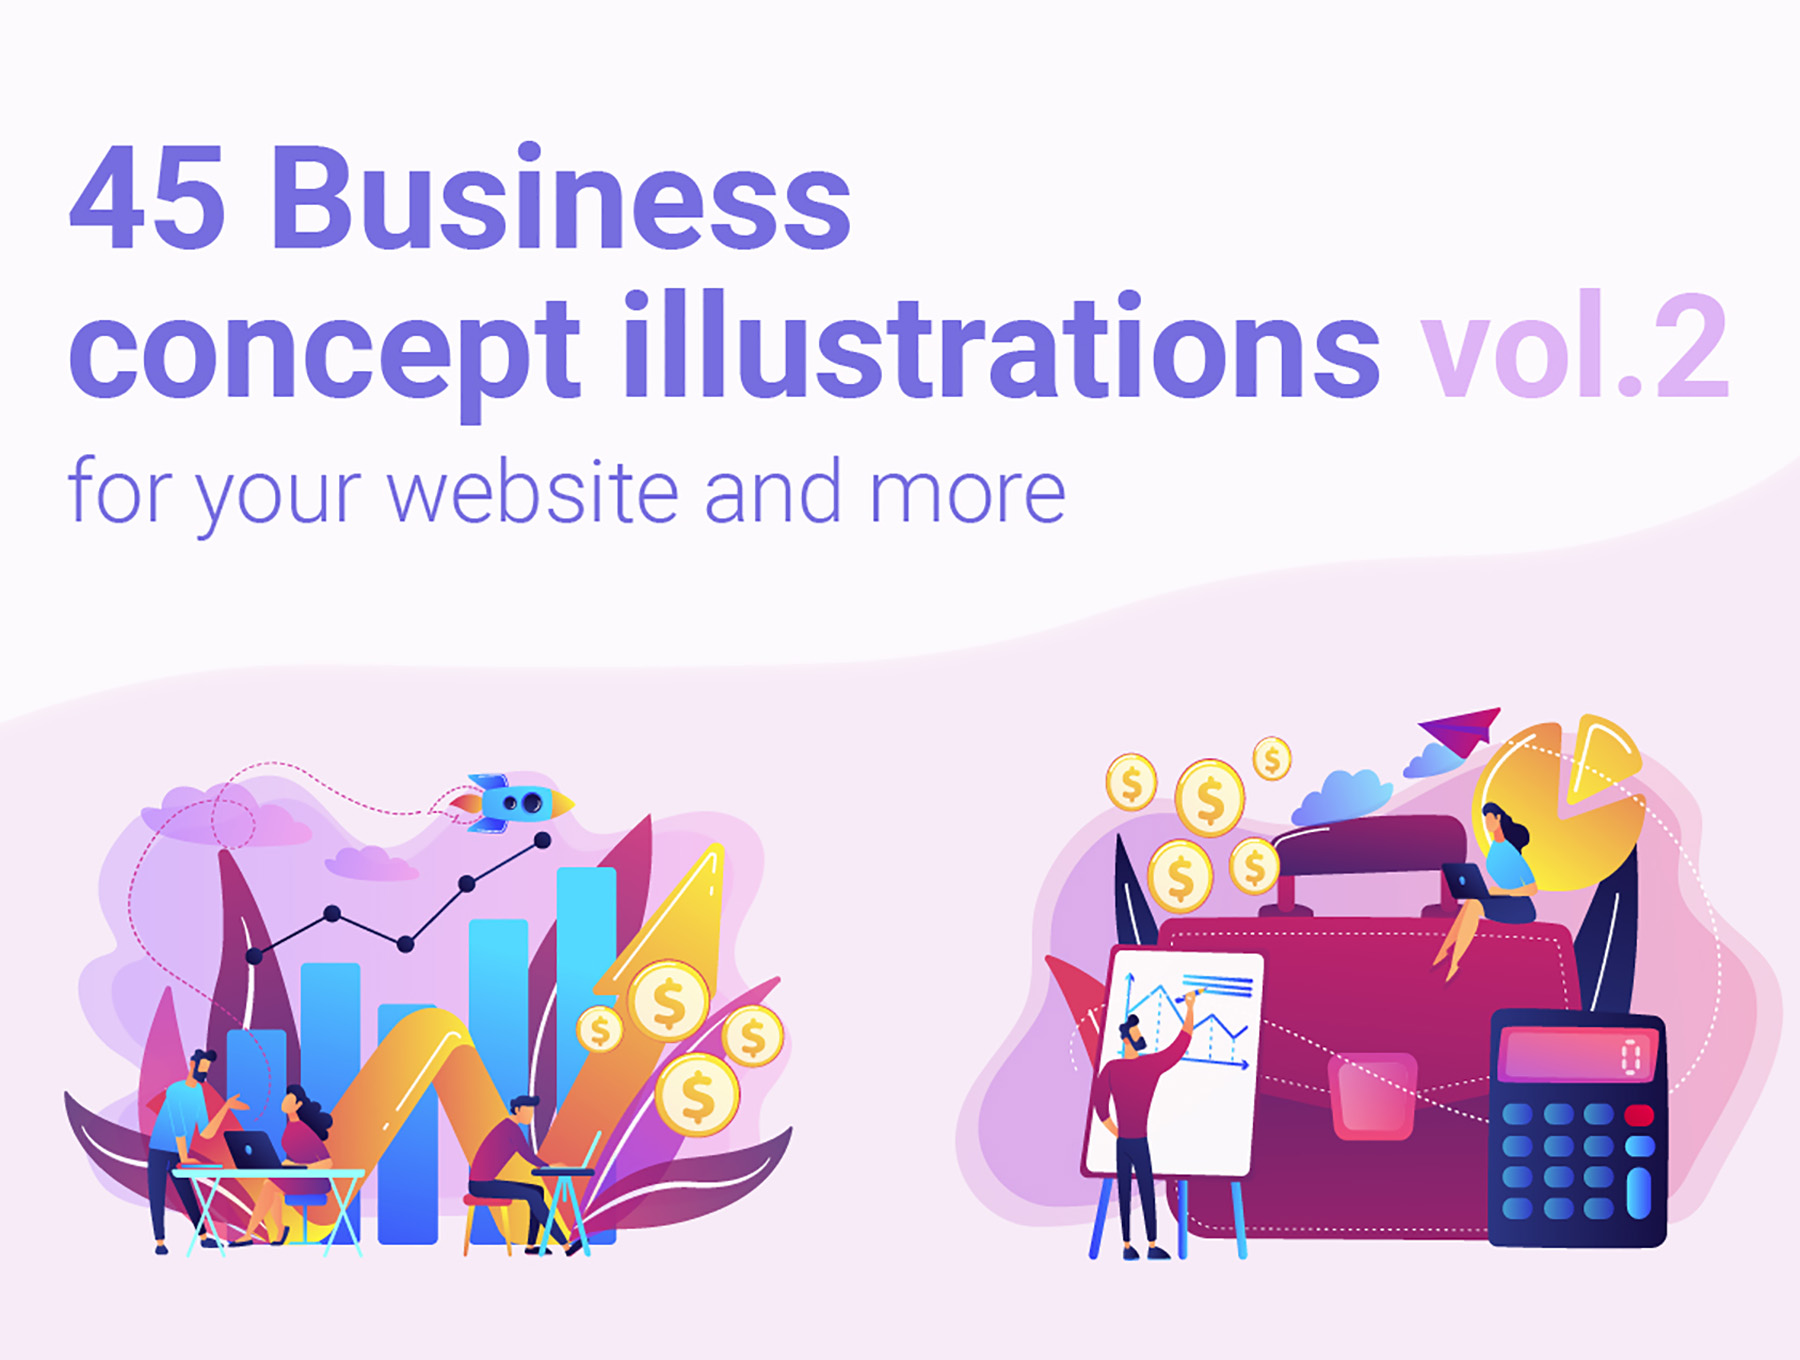 organic-business-concept-illustrations-vol2-cover0.jpg